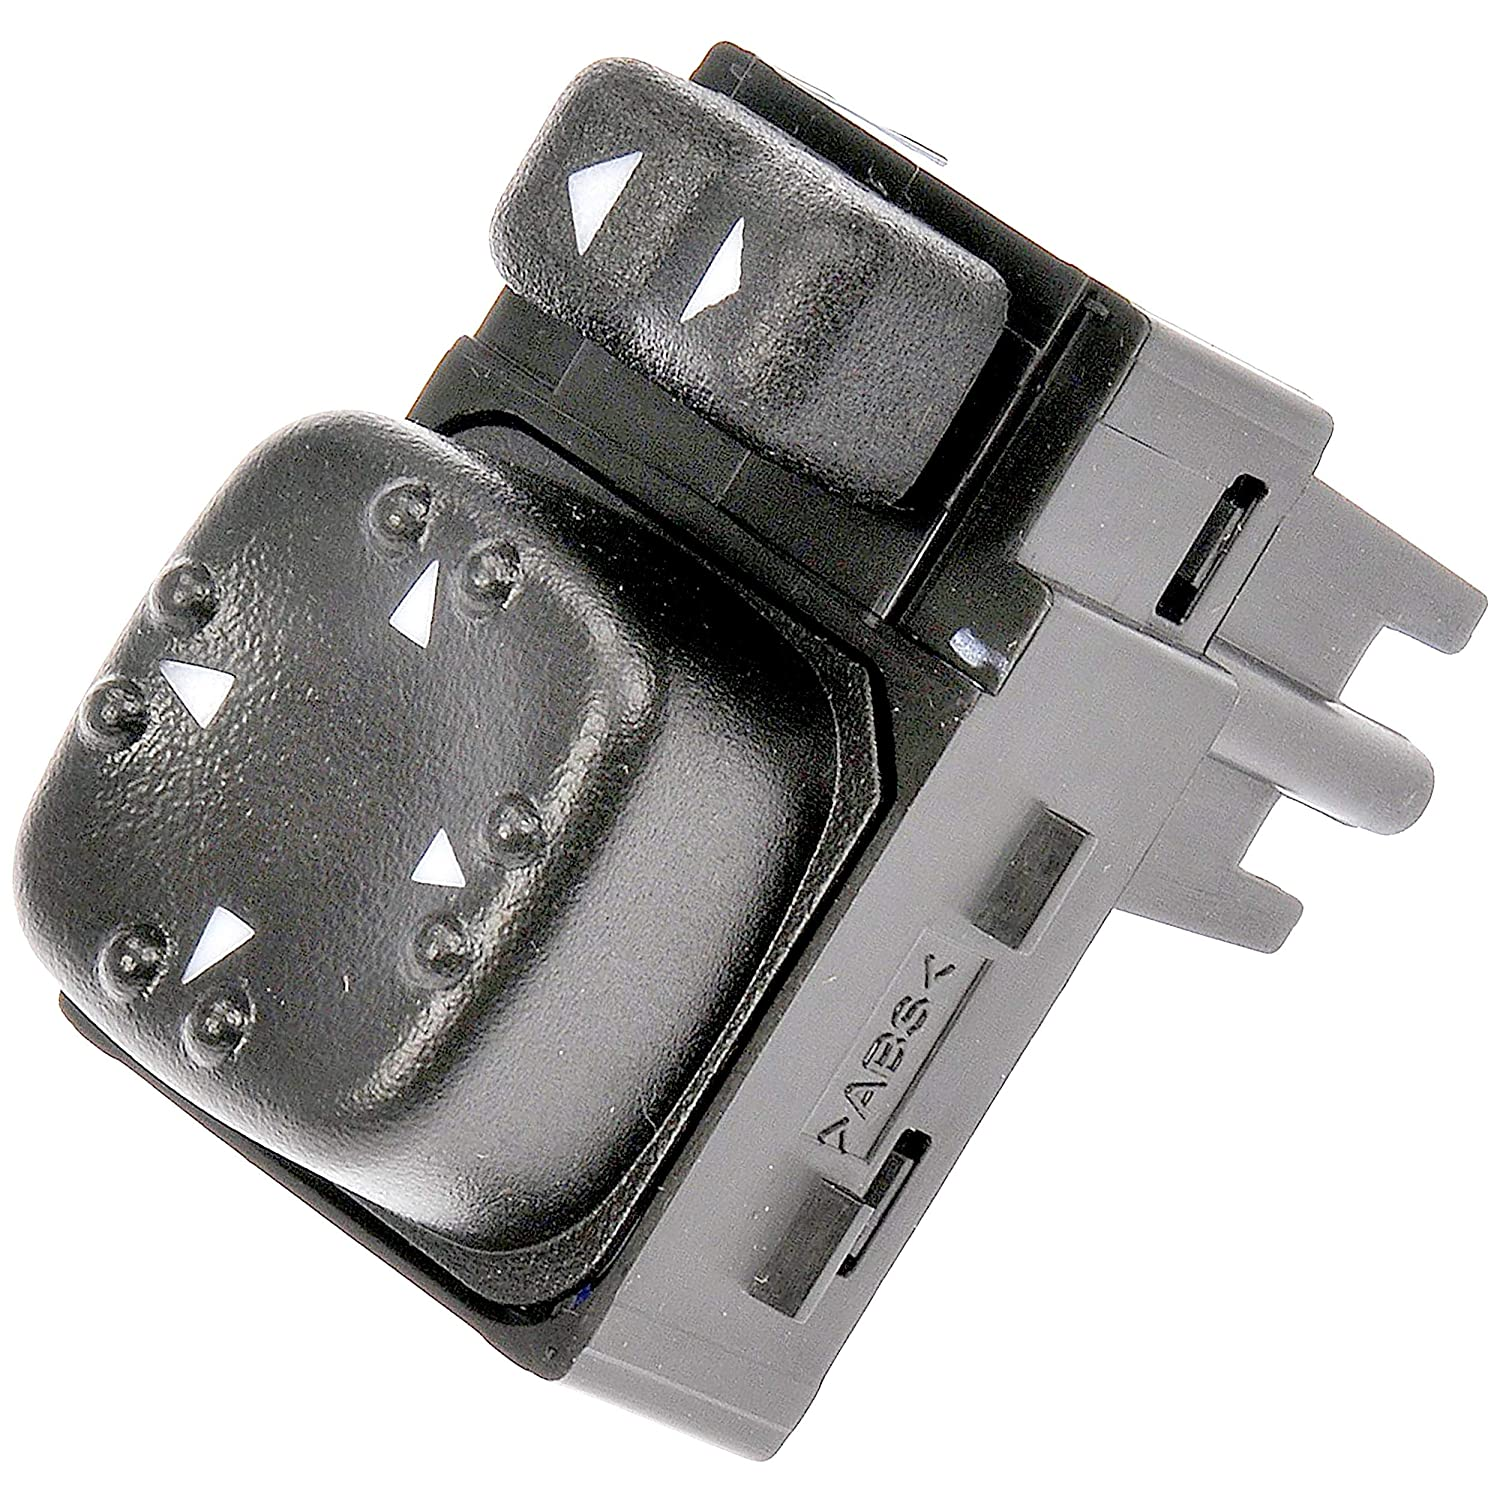 APDTY 012235 Power Mirror Adjust Switch Fits 2000-2002 Chevy Avalanche Silverado Suburban Tahoe GMC Denali Sierra Yukon 2002 Cadillac Escalade (Front Left; Replaces 19259975, 15045085)